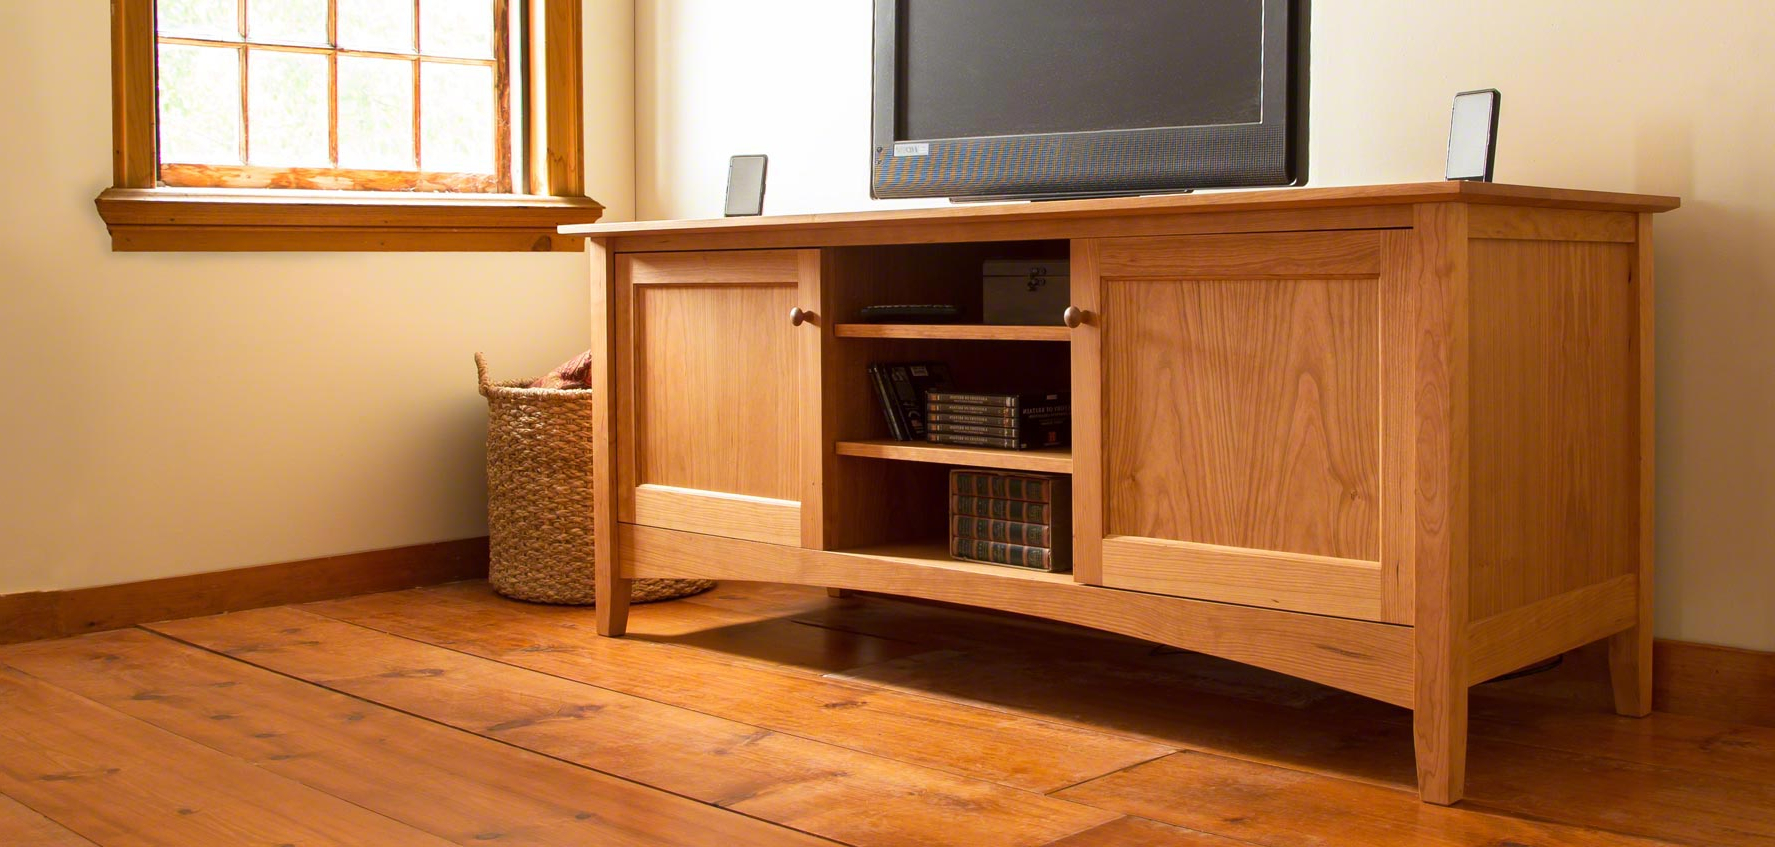 Trendy Wood Tv Floor Stands Intended For Handcrafted Wood Tv Stands & Media Consoles – Vermont Woods Studios (View 11 of 20)